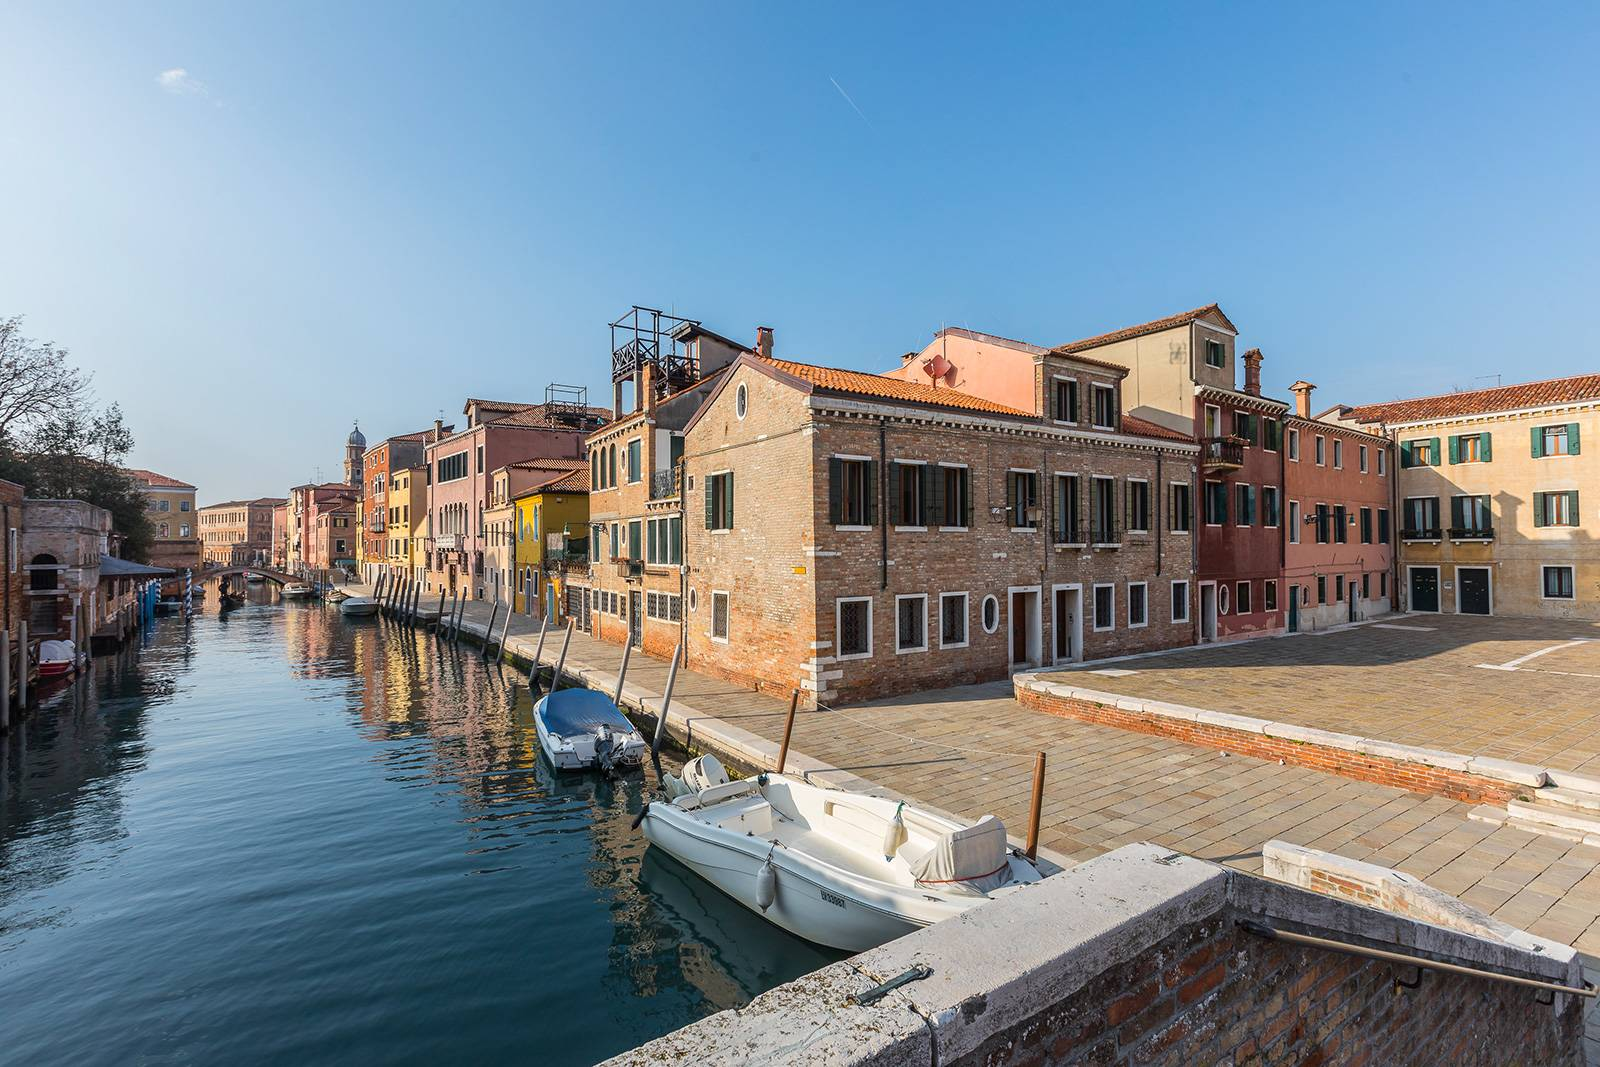 the San Trovaso Prestige is the raw brick building on the corner between the square and the canal